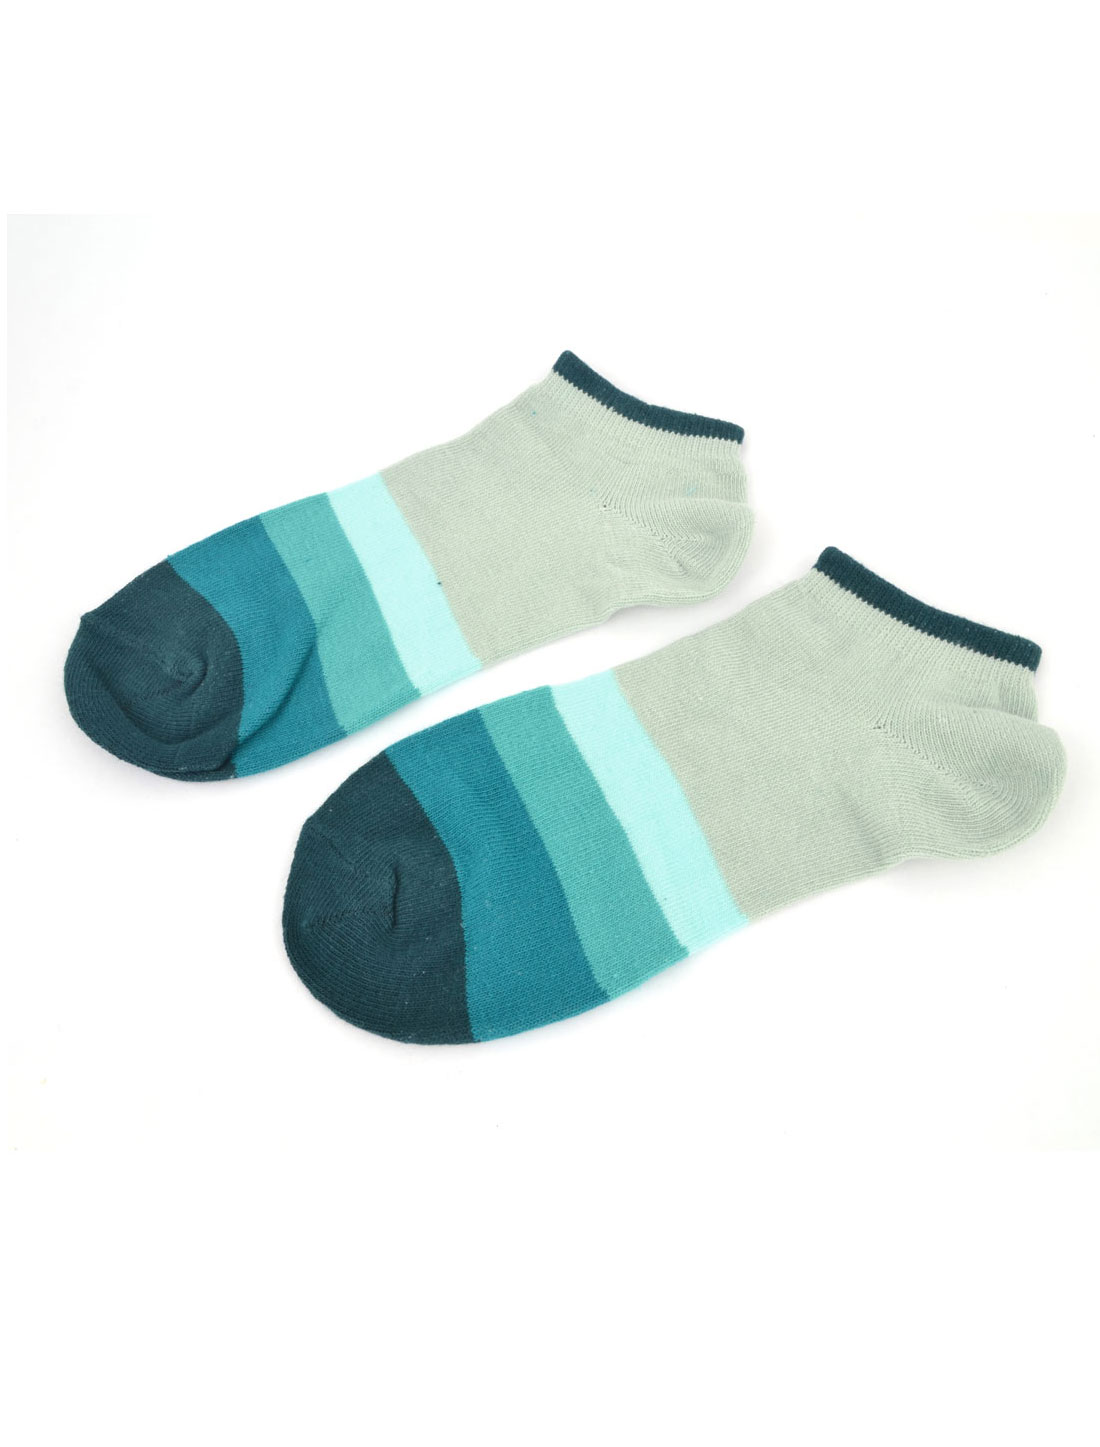 Unisex Elastic Cuff Low Cut Ankle Colorful Stripes Short Socks Cyan Green Pair